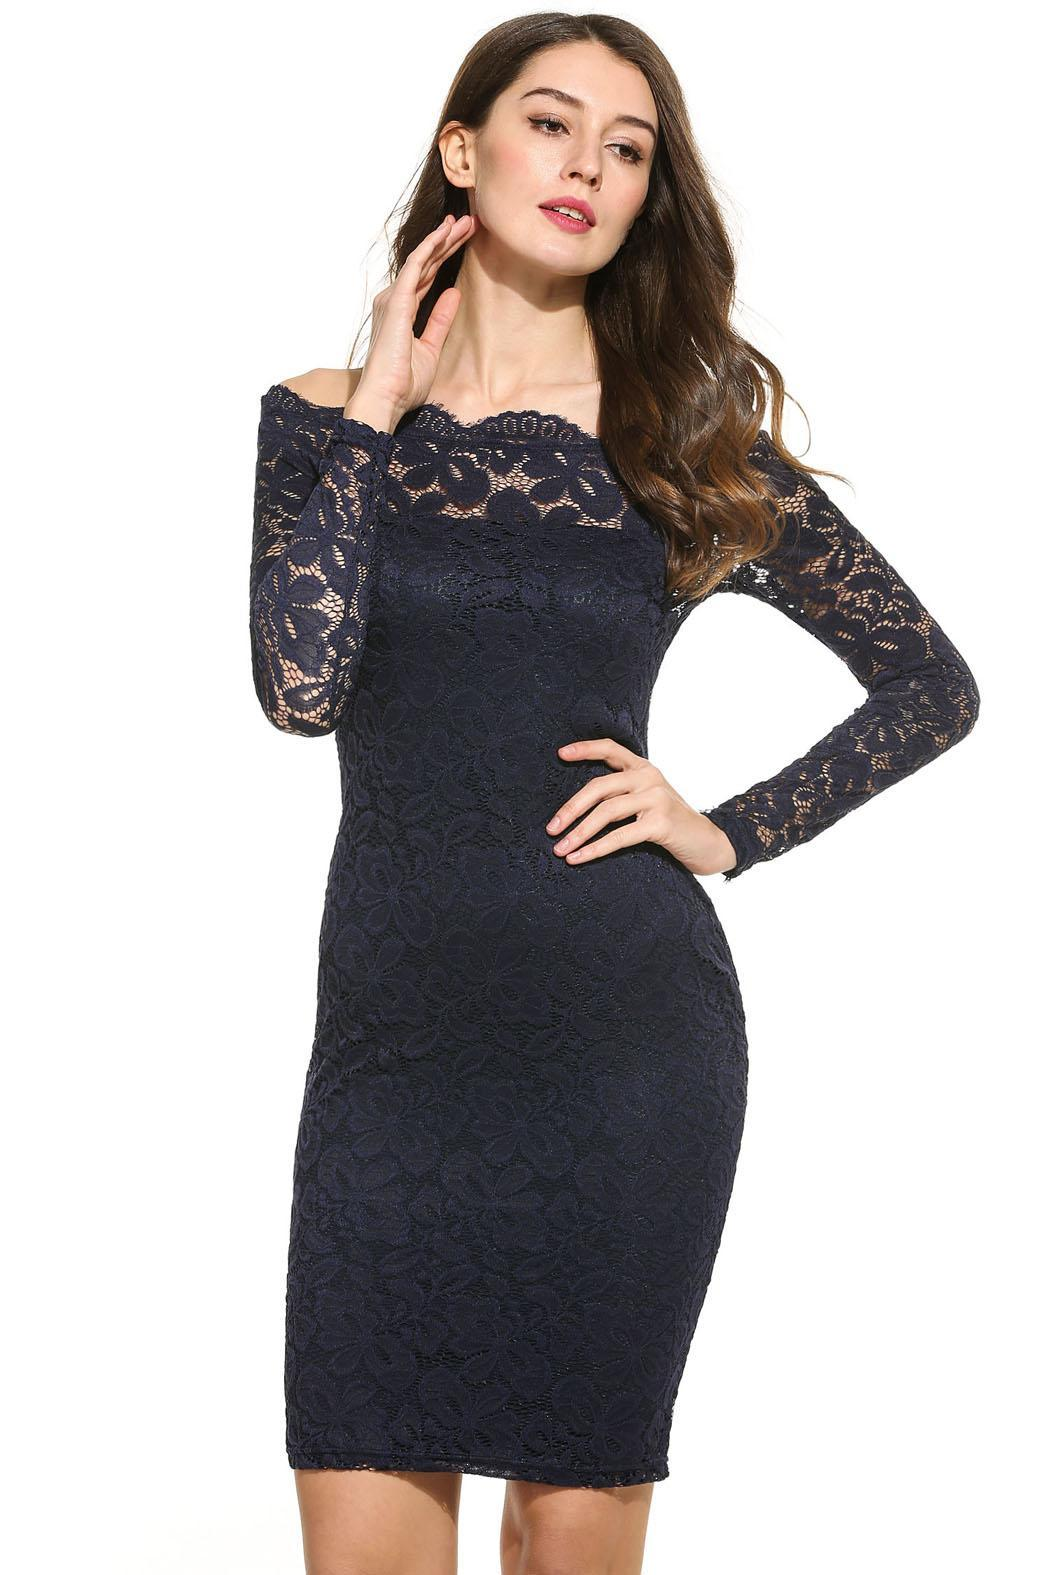 Women Sexy Strapless Off Shoulder Hollow Floral Lace Dress with Inner Tube 0